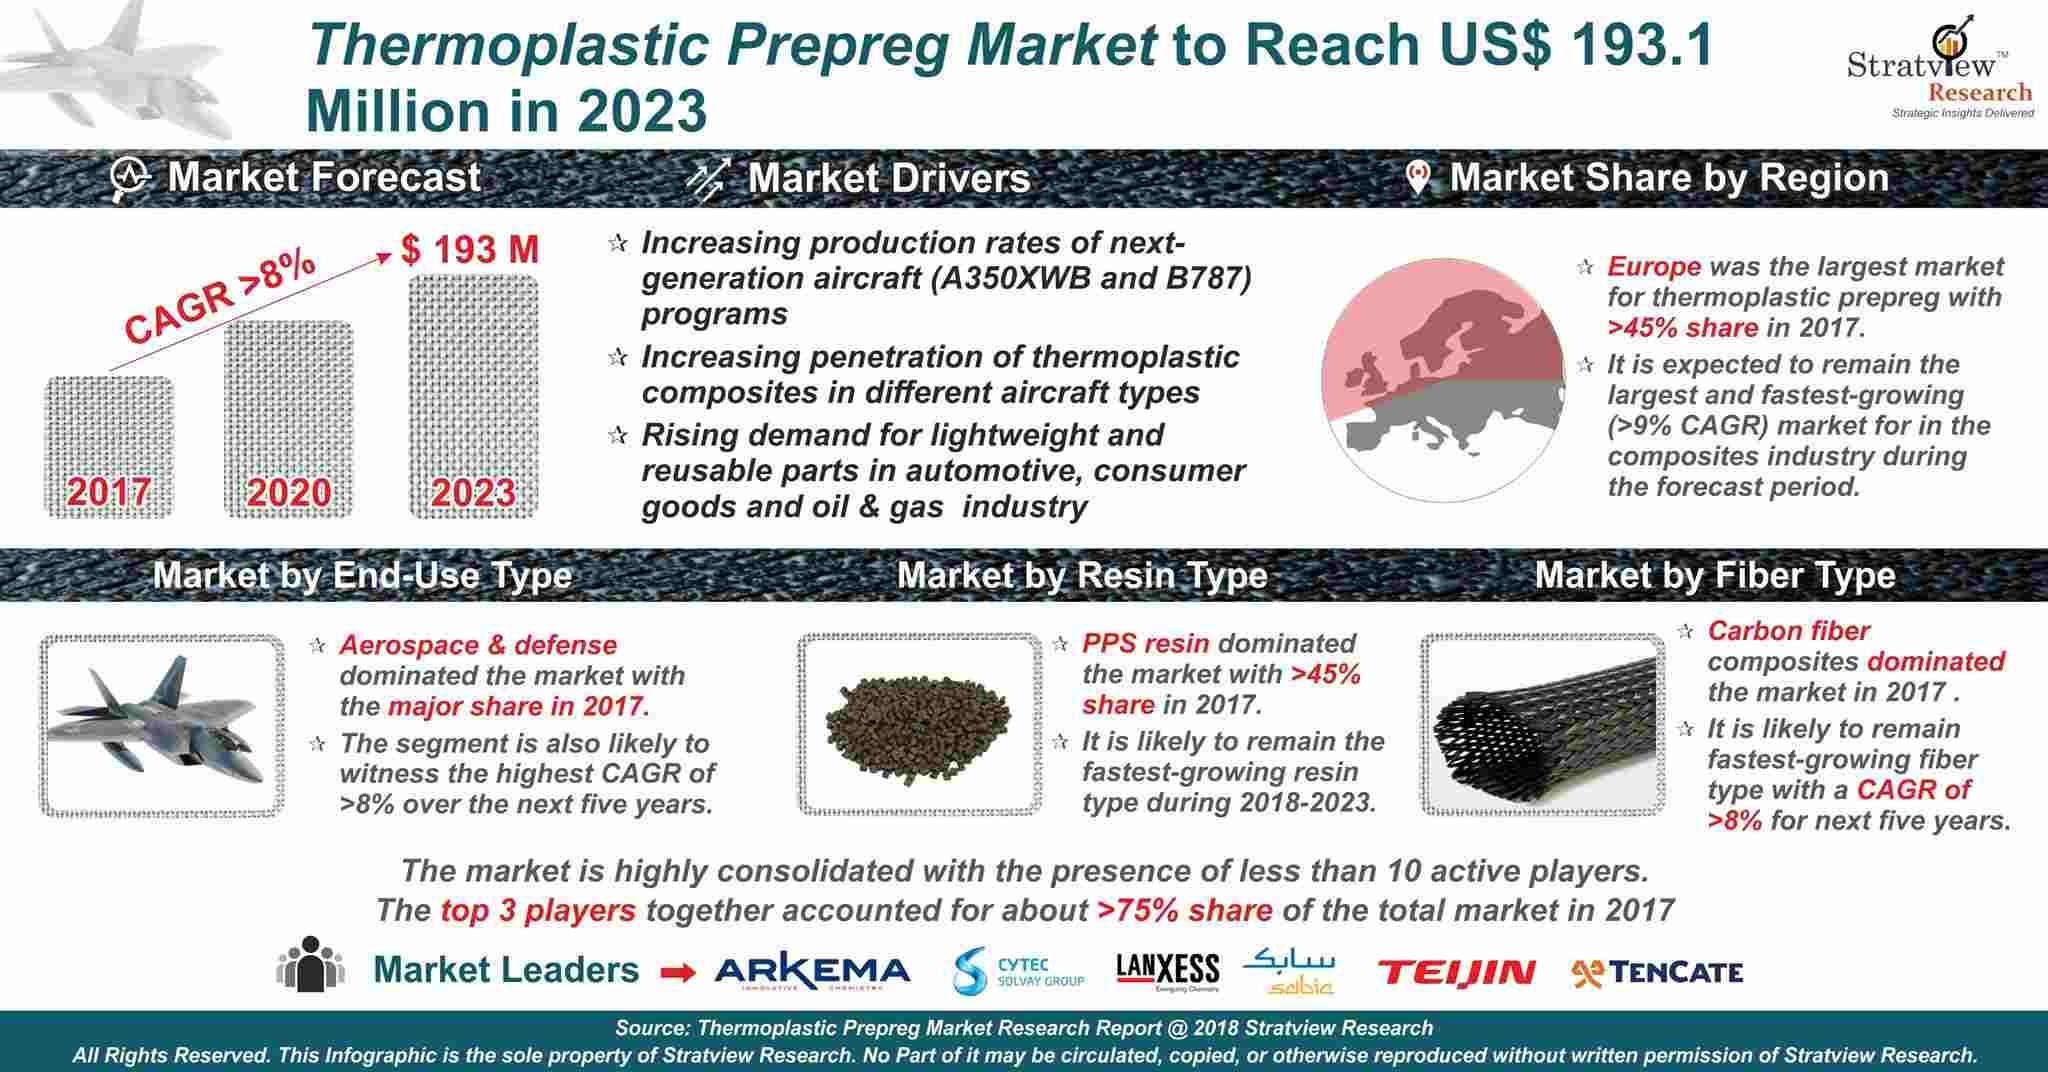 Thermoplastic Prepreg Market Analysis